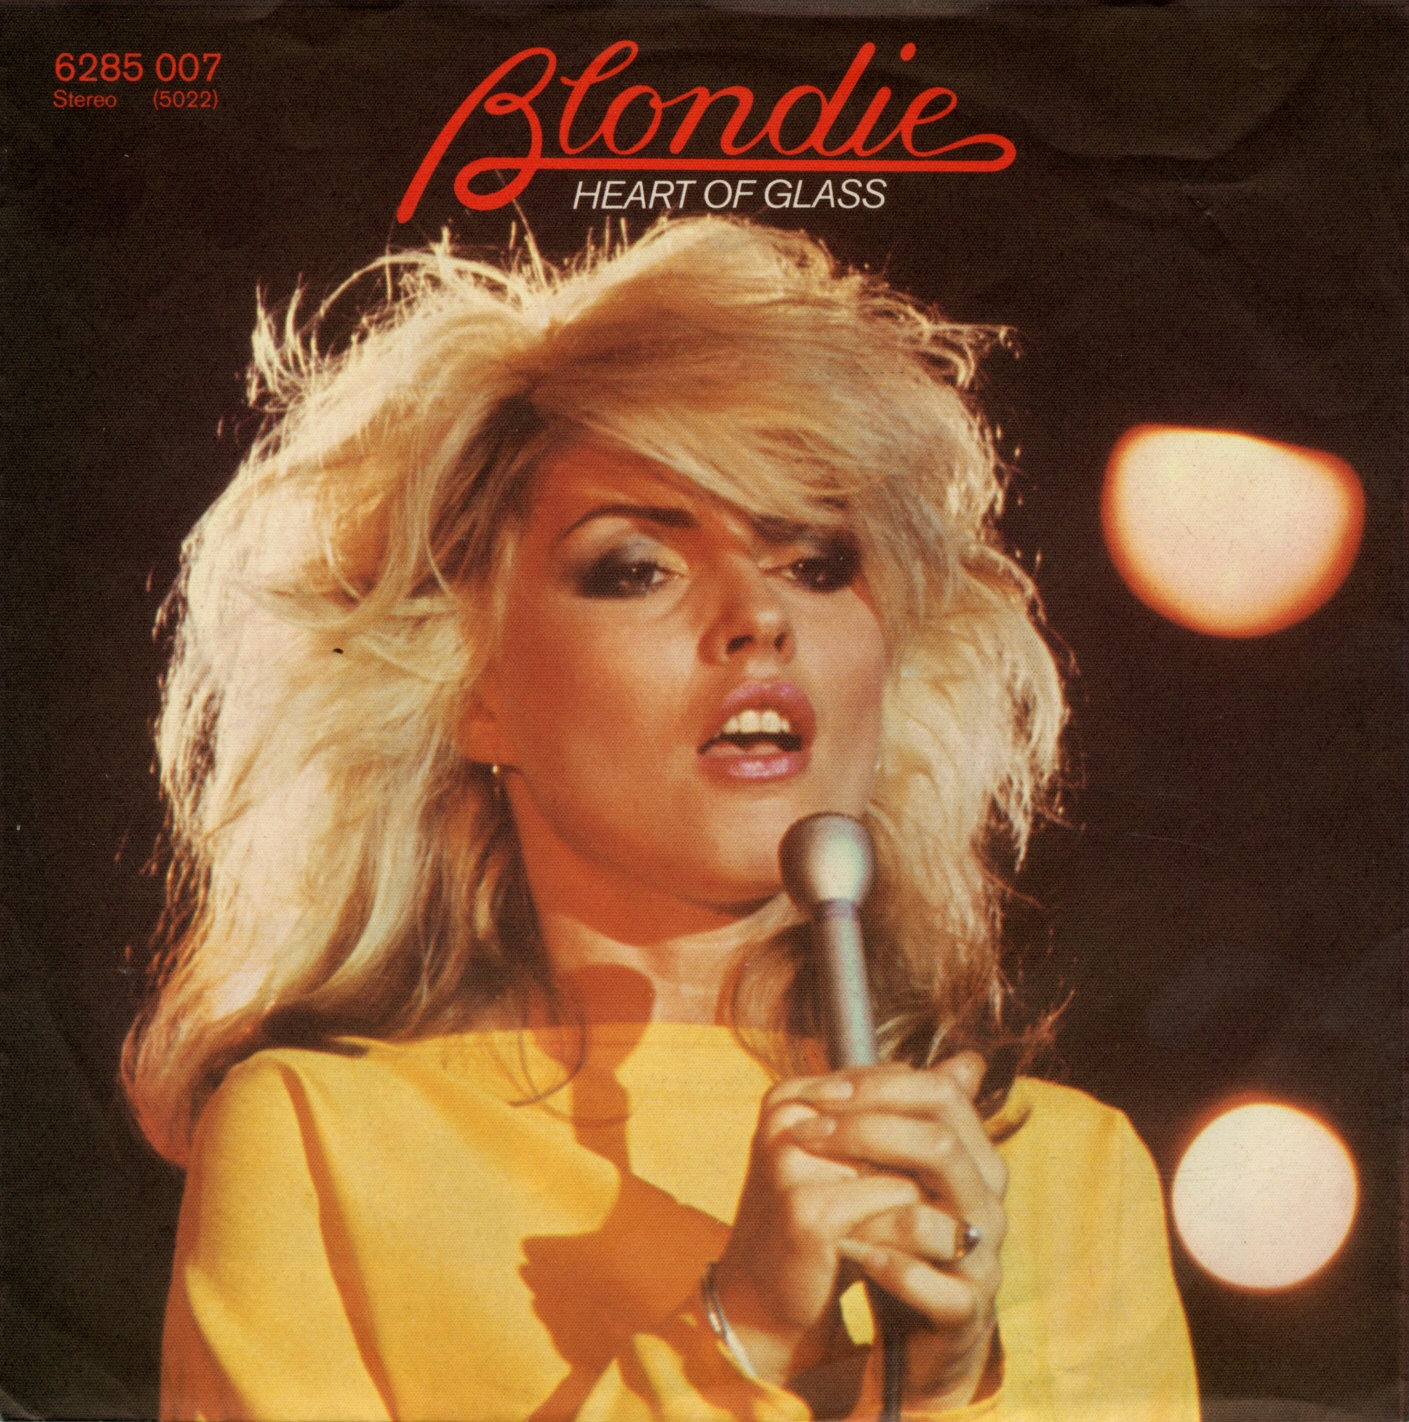 Cover: Heart of glass, Blondie